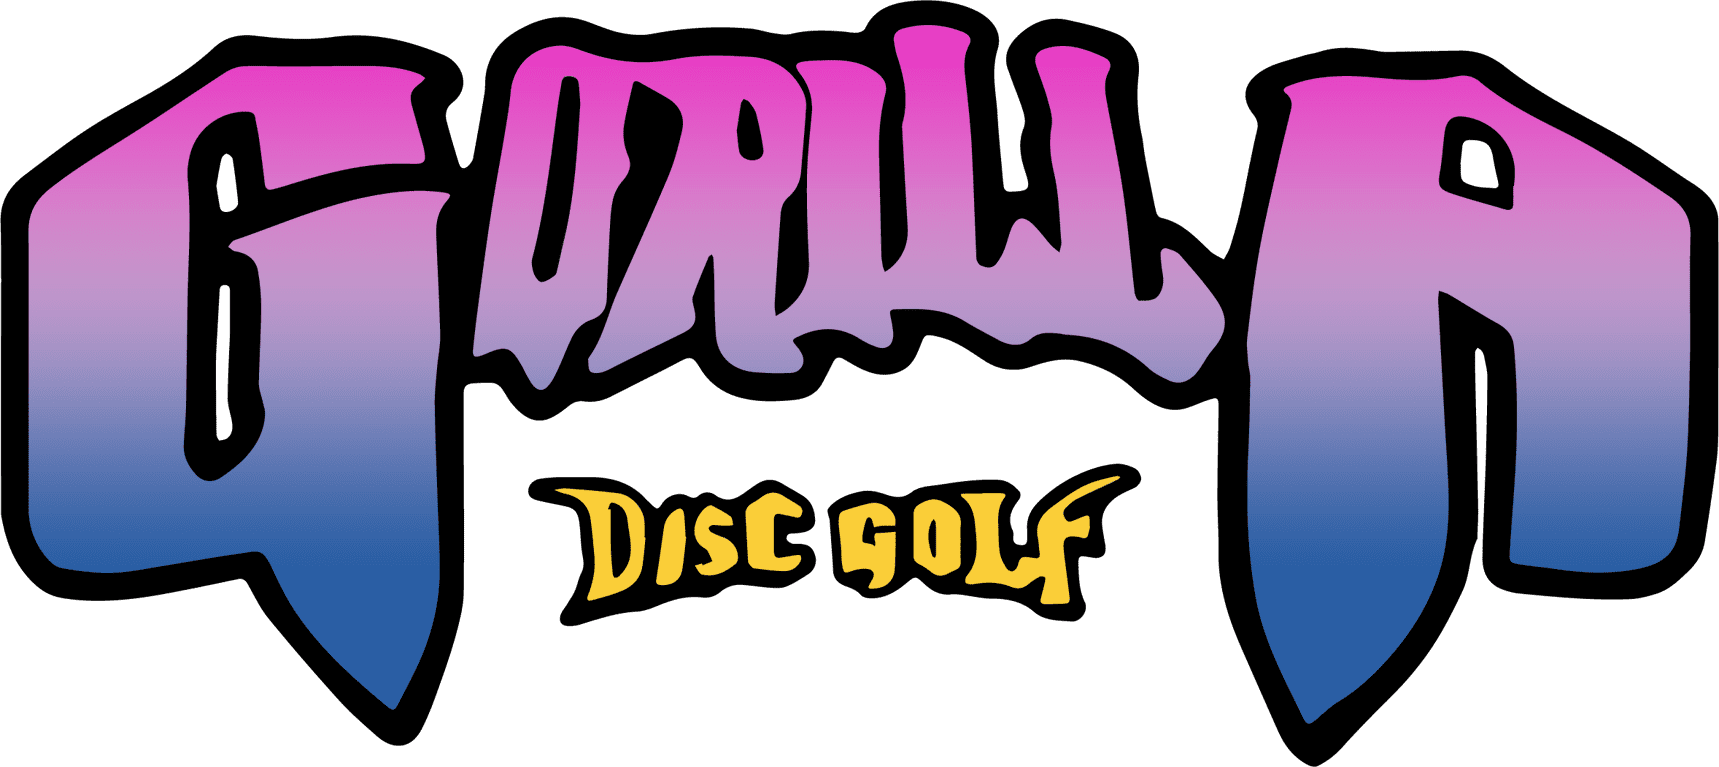 Gorilla Disc Golf